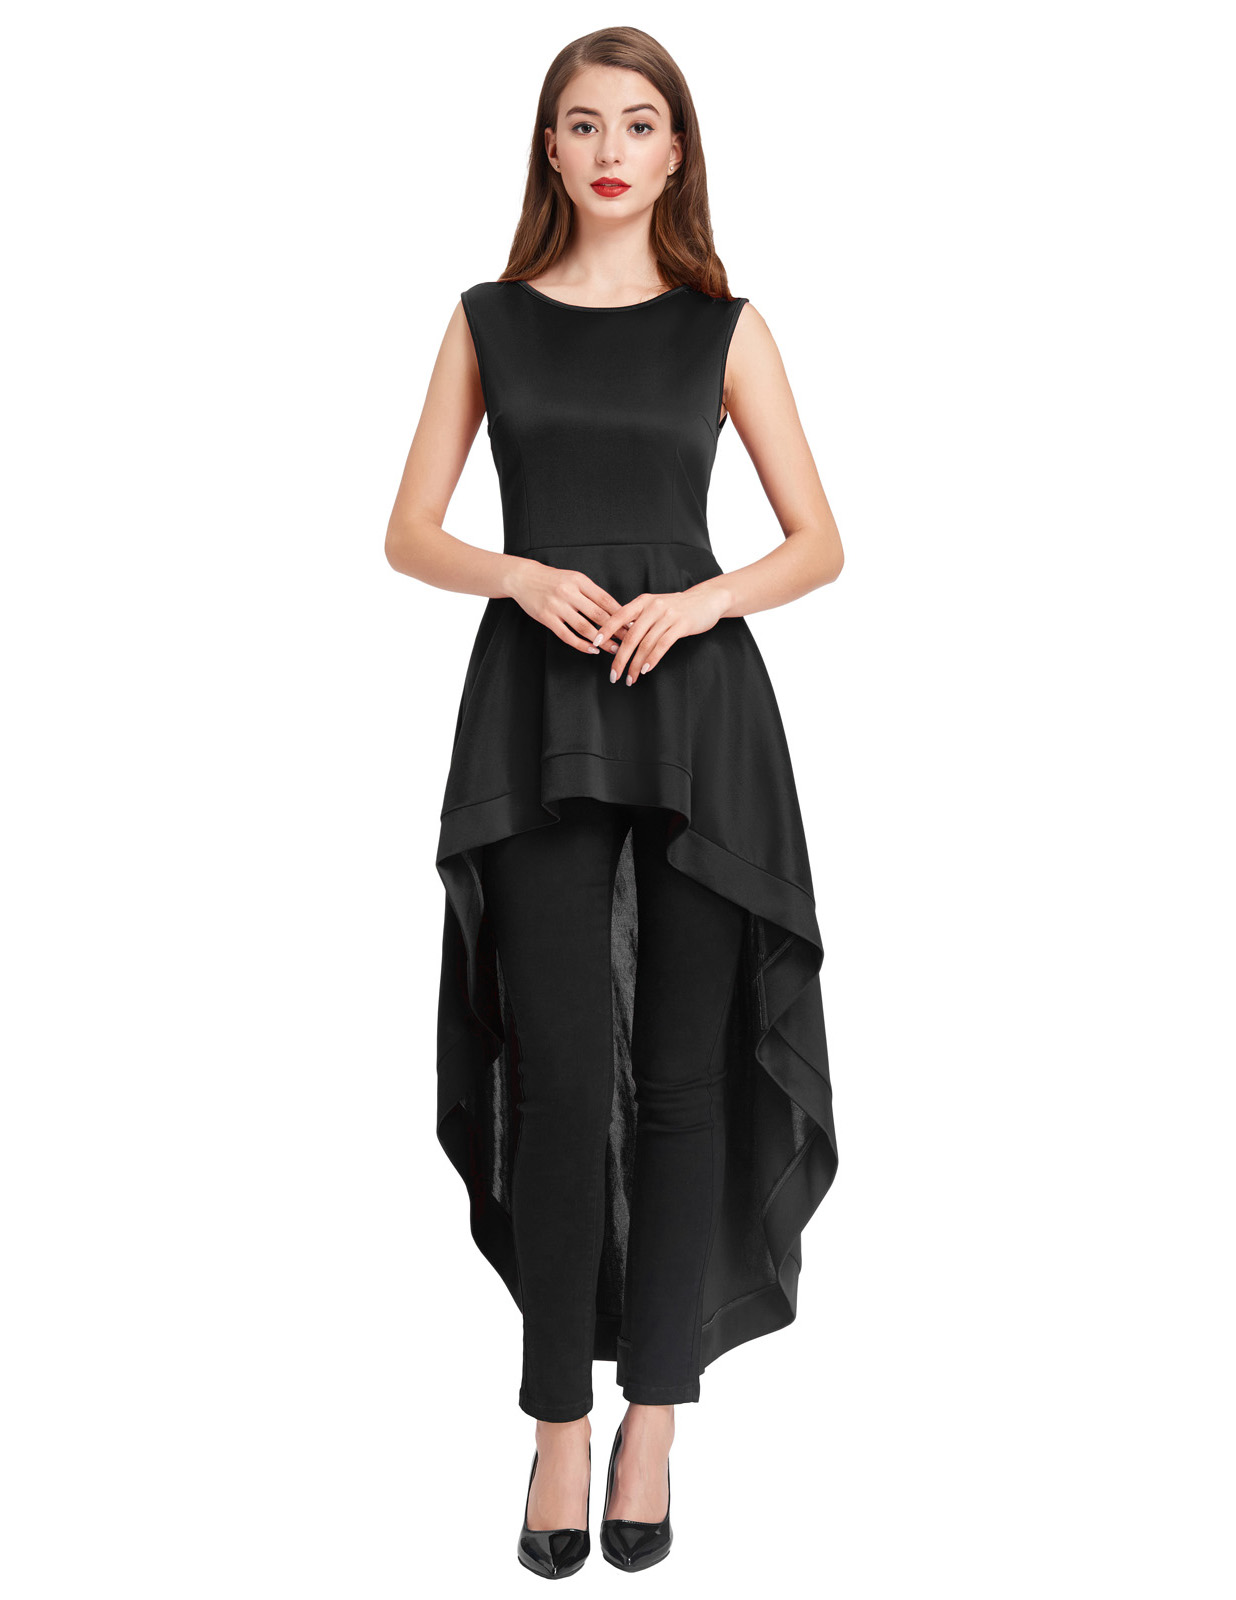 Womens Sleeveless Evening Gown Formal Crew Neck Irregular High-low Hem Dress